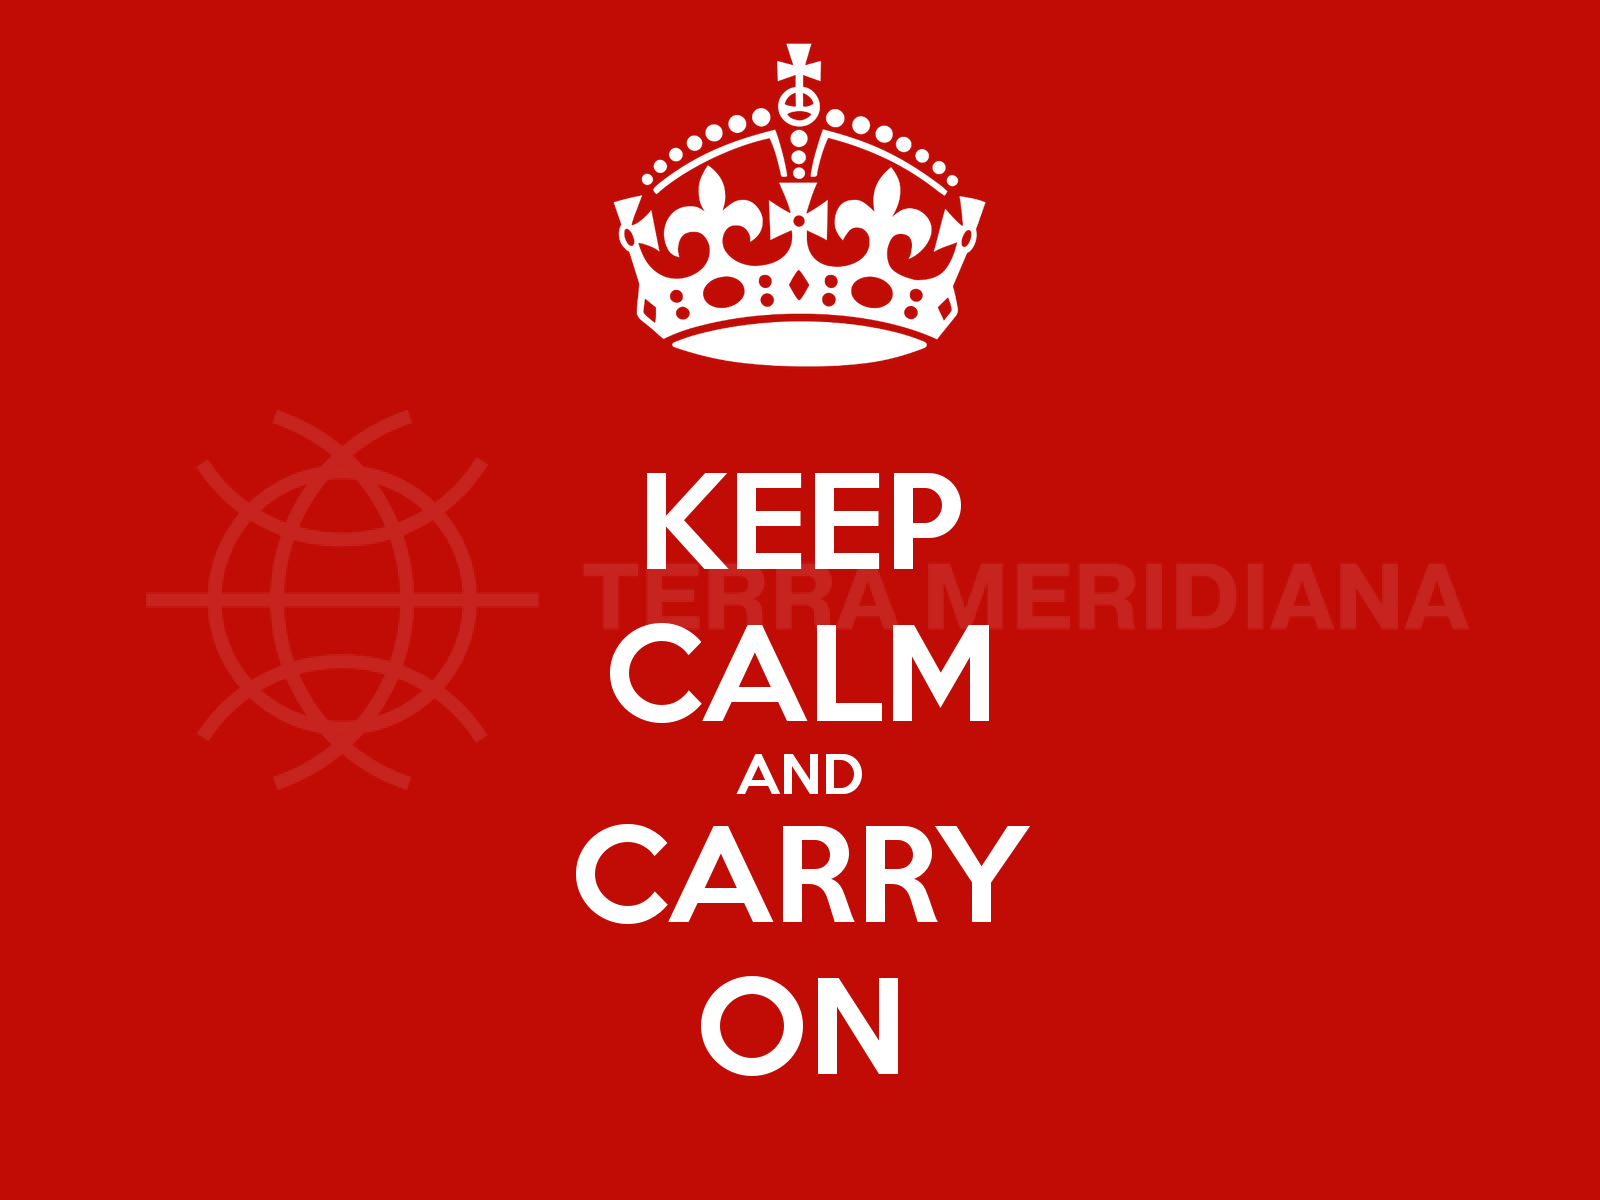 Brexit? Keep calm and carry on